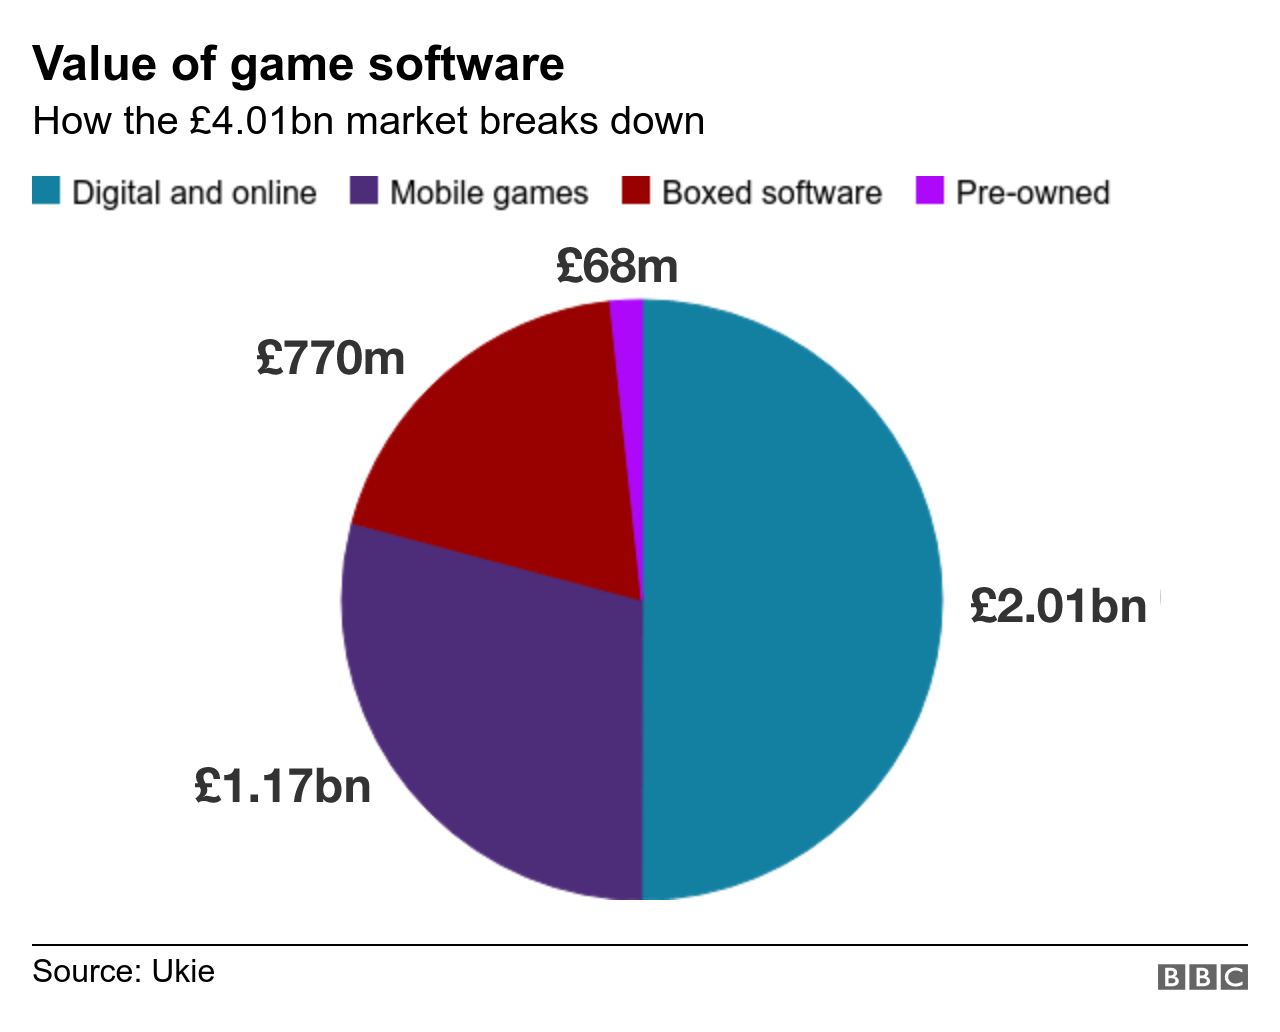 Graphic: Breakdown of software market value